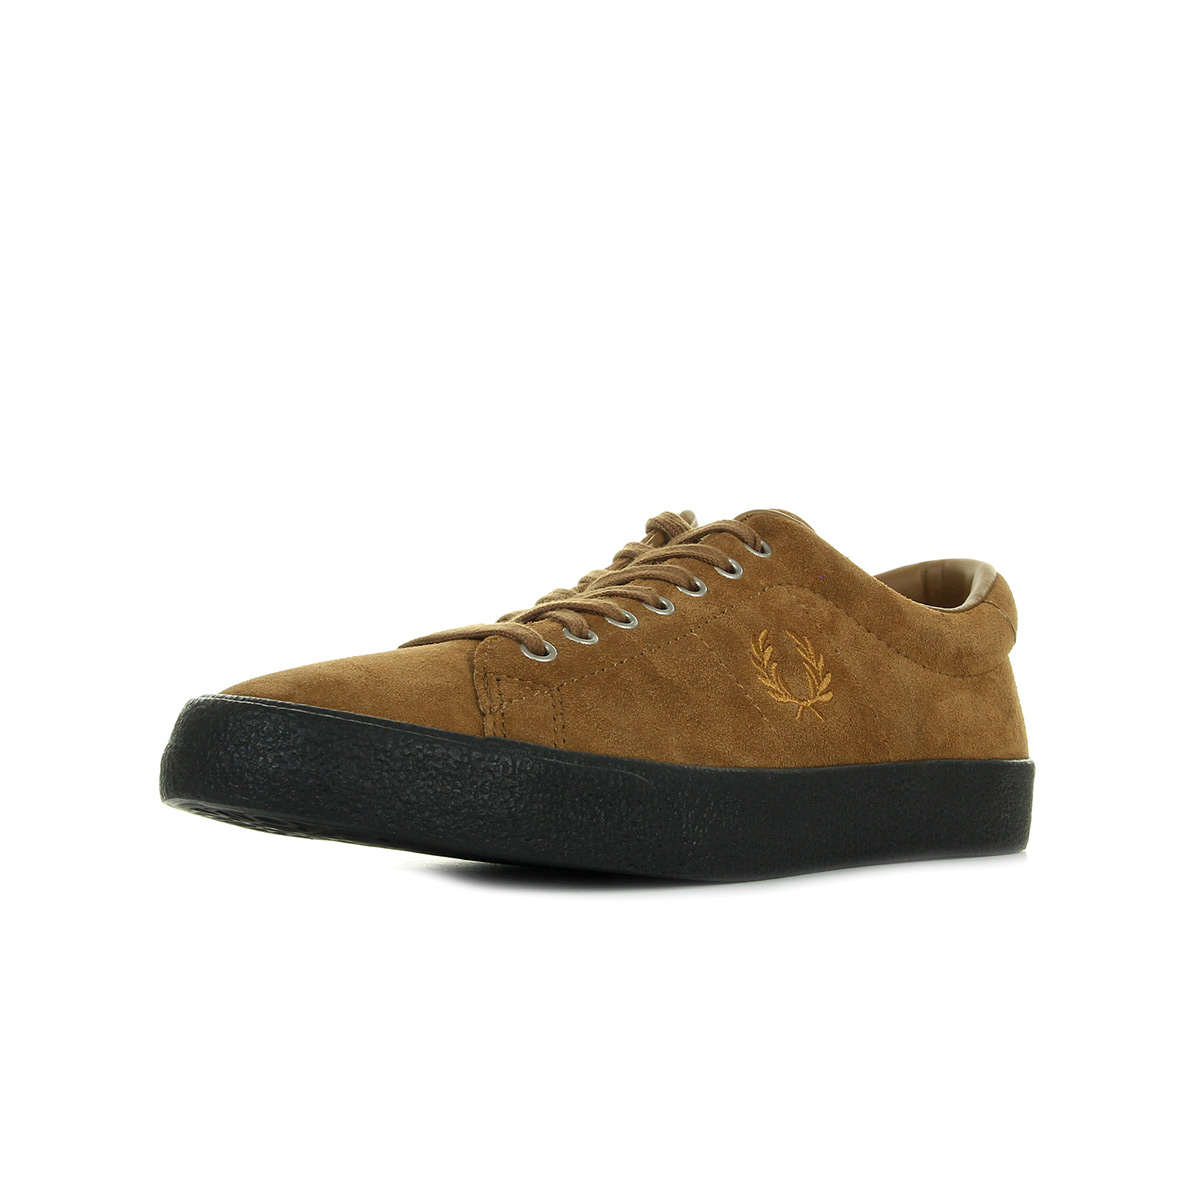 Marques Chaussure homme Fred Perry homme UNDERSPIN SUEDE Ginger